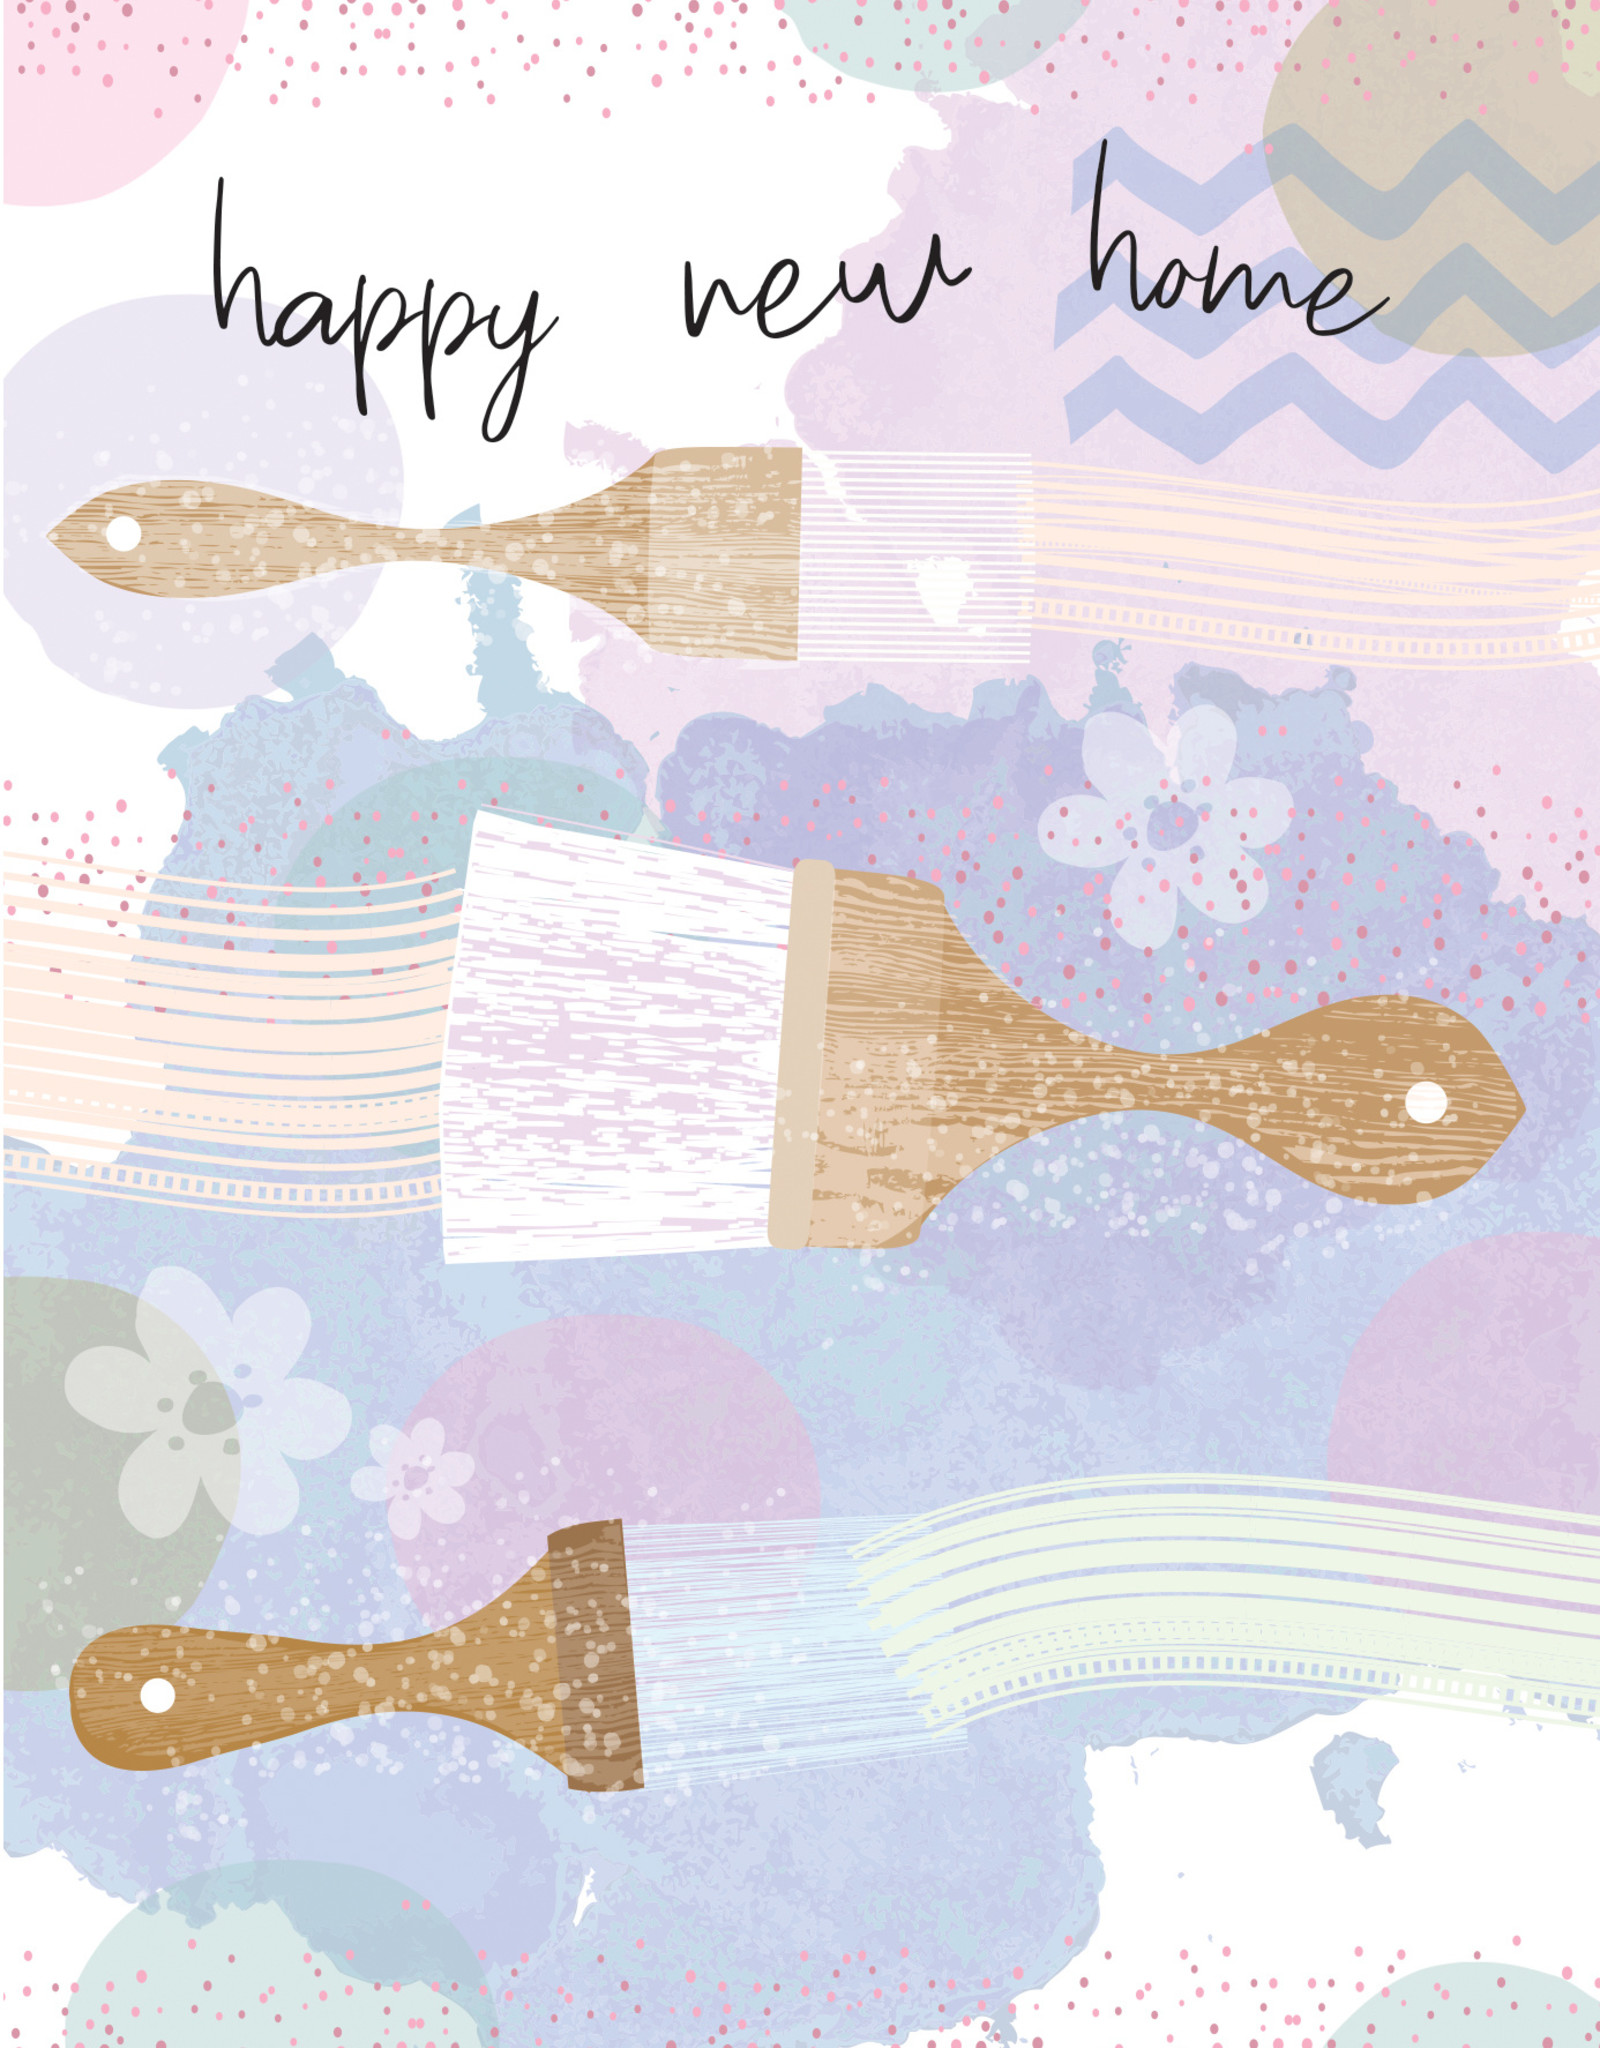 Pictura Pictura - New Home Card 60996